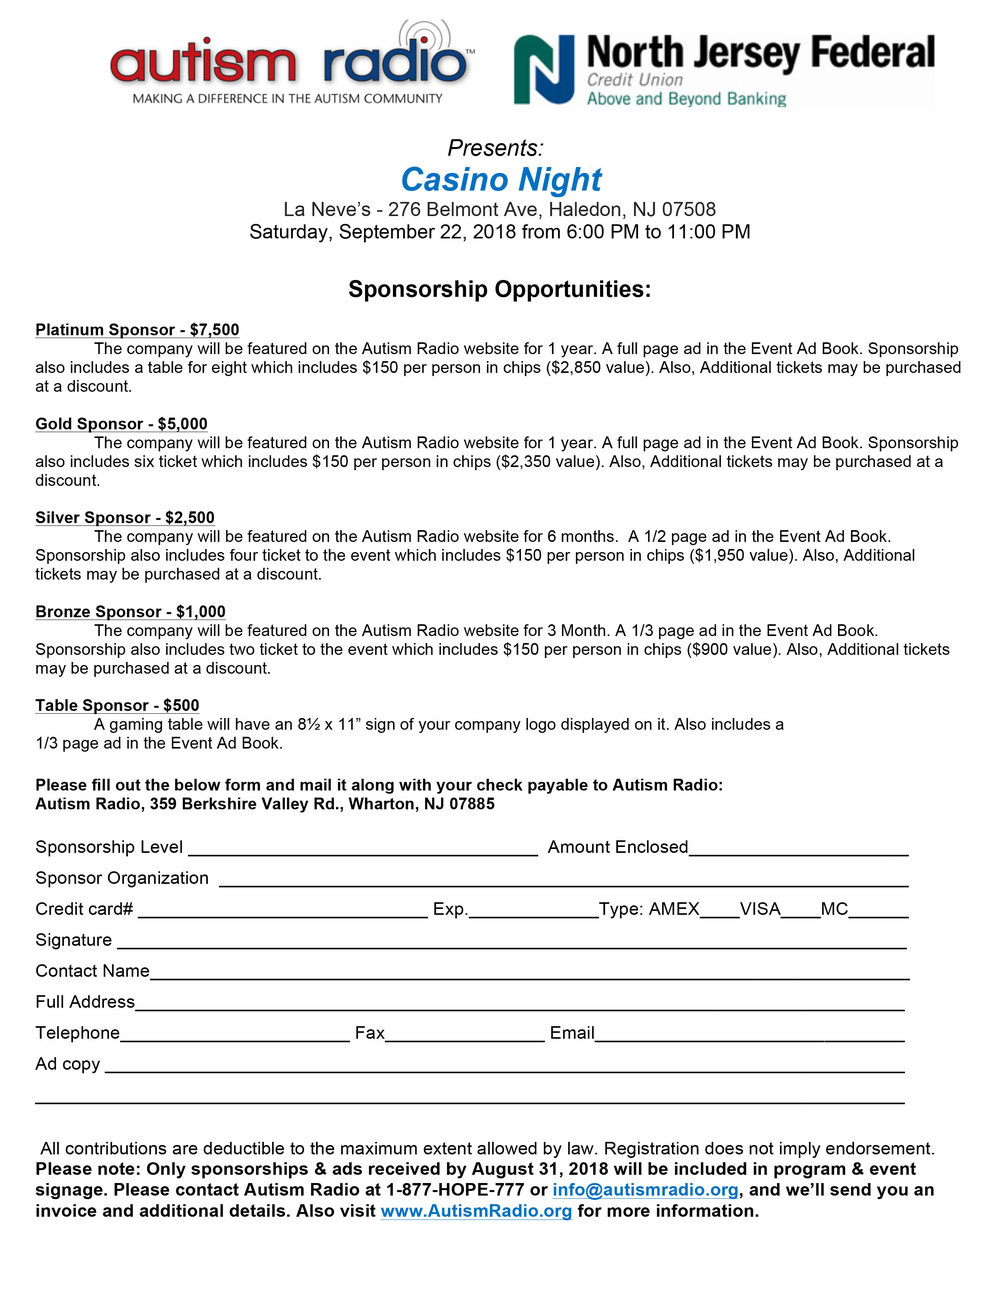 Casino Night Sponsorship form 2018.jpg